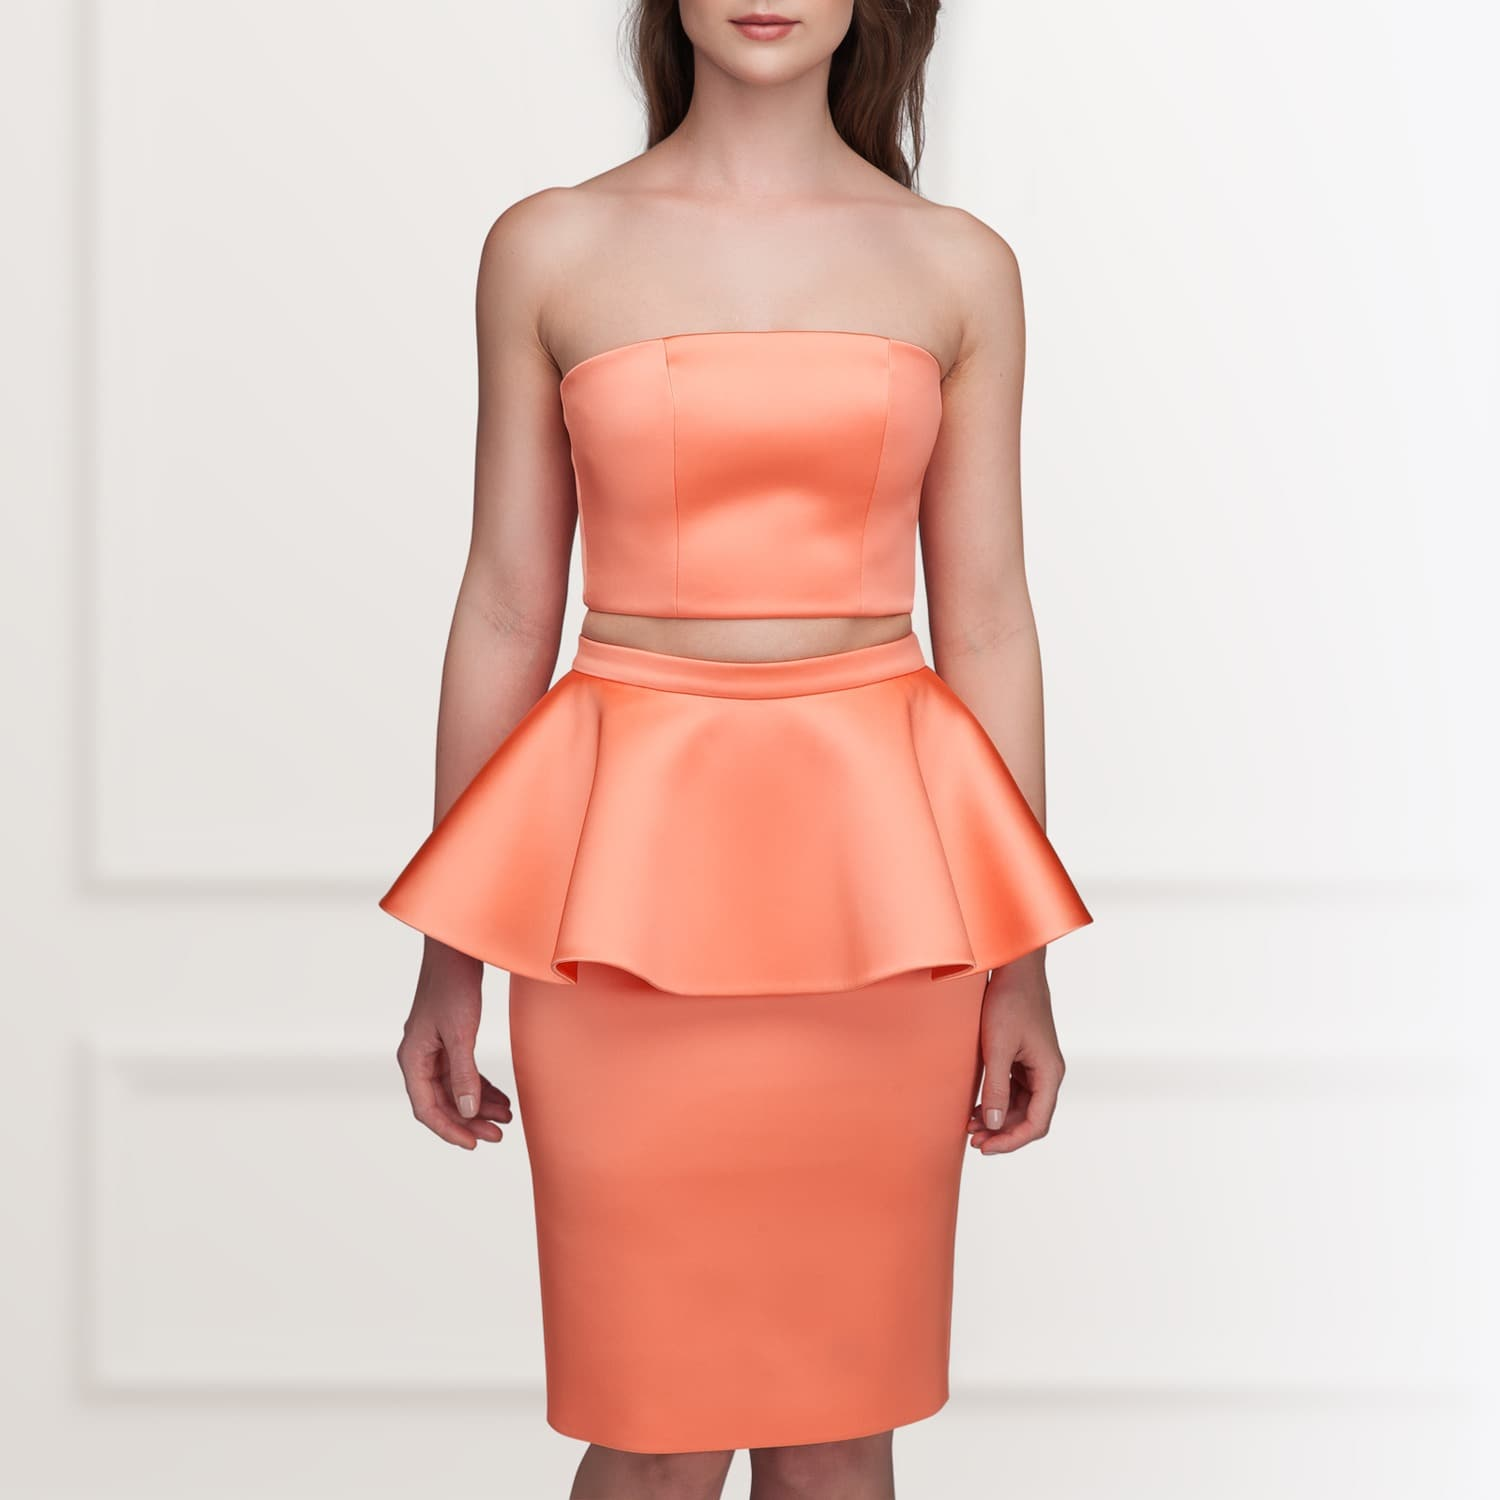 Coral strapless peplum dress